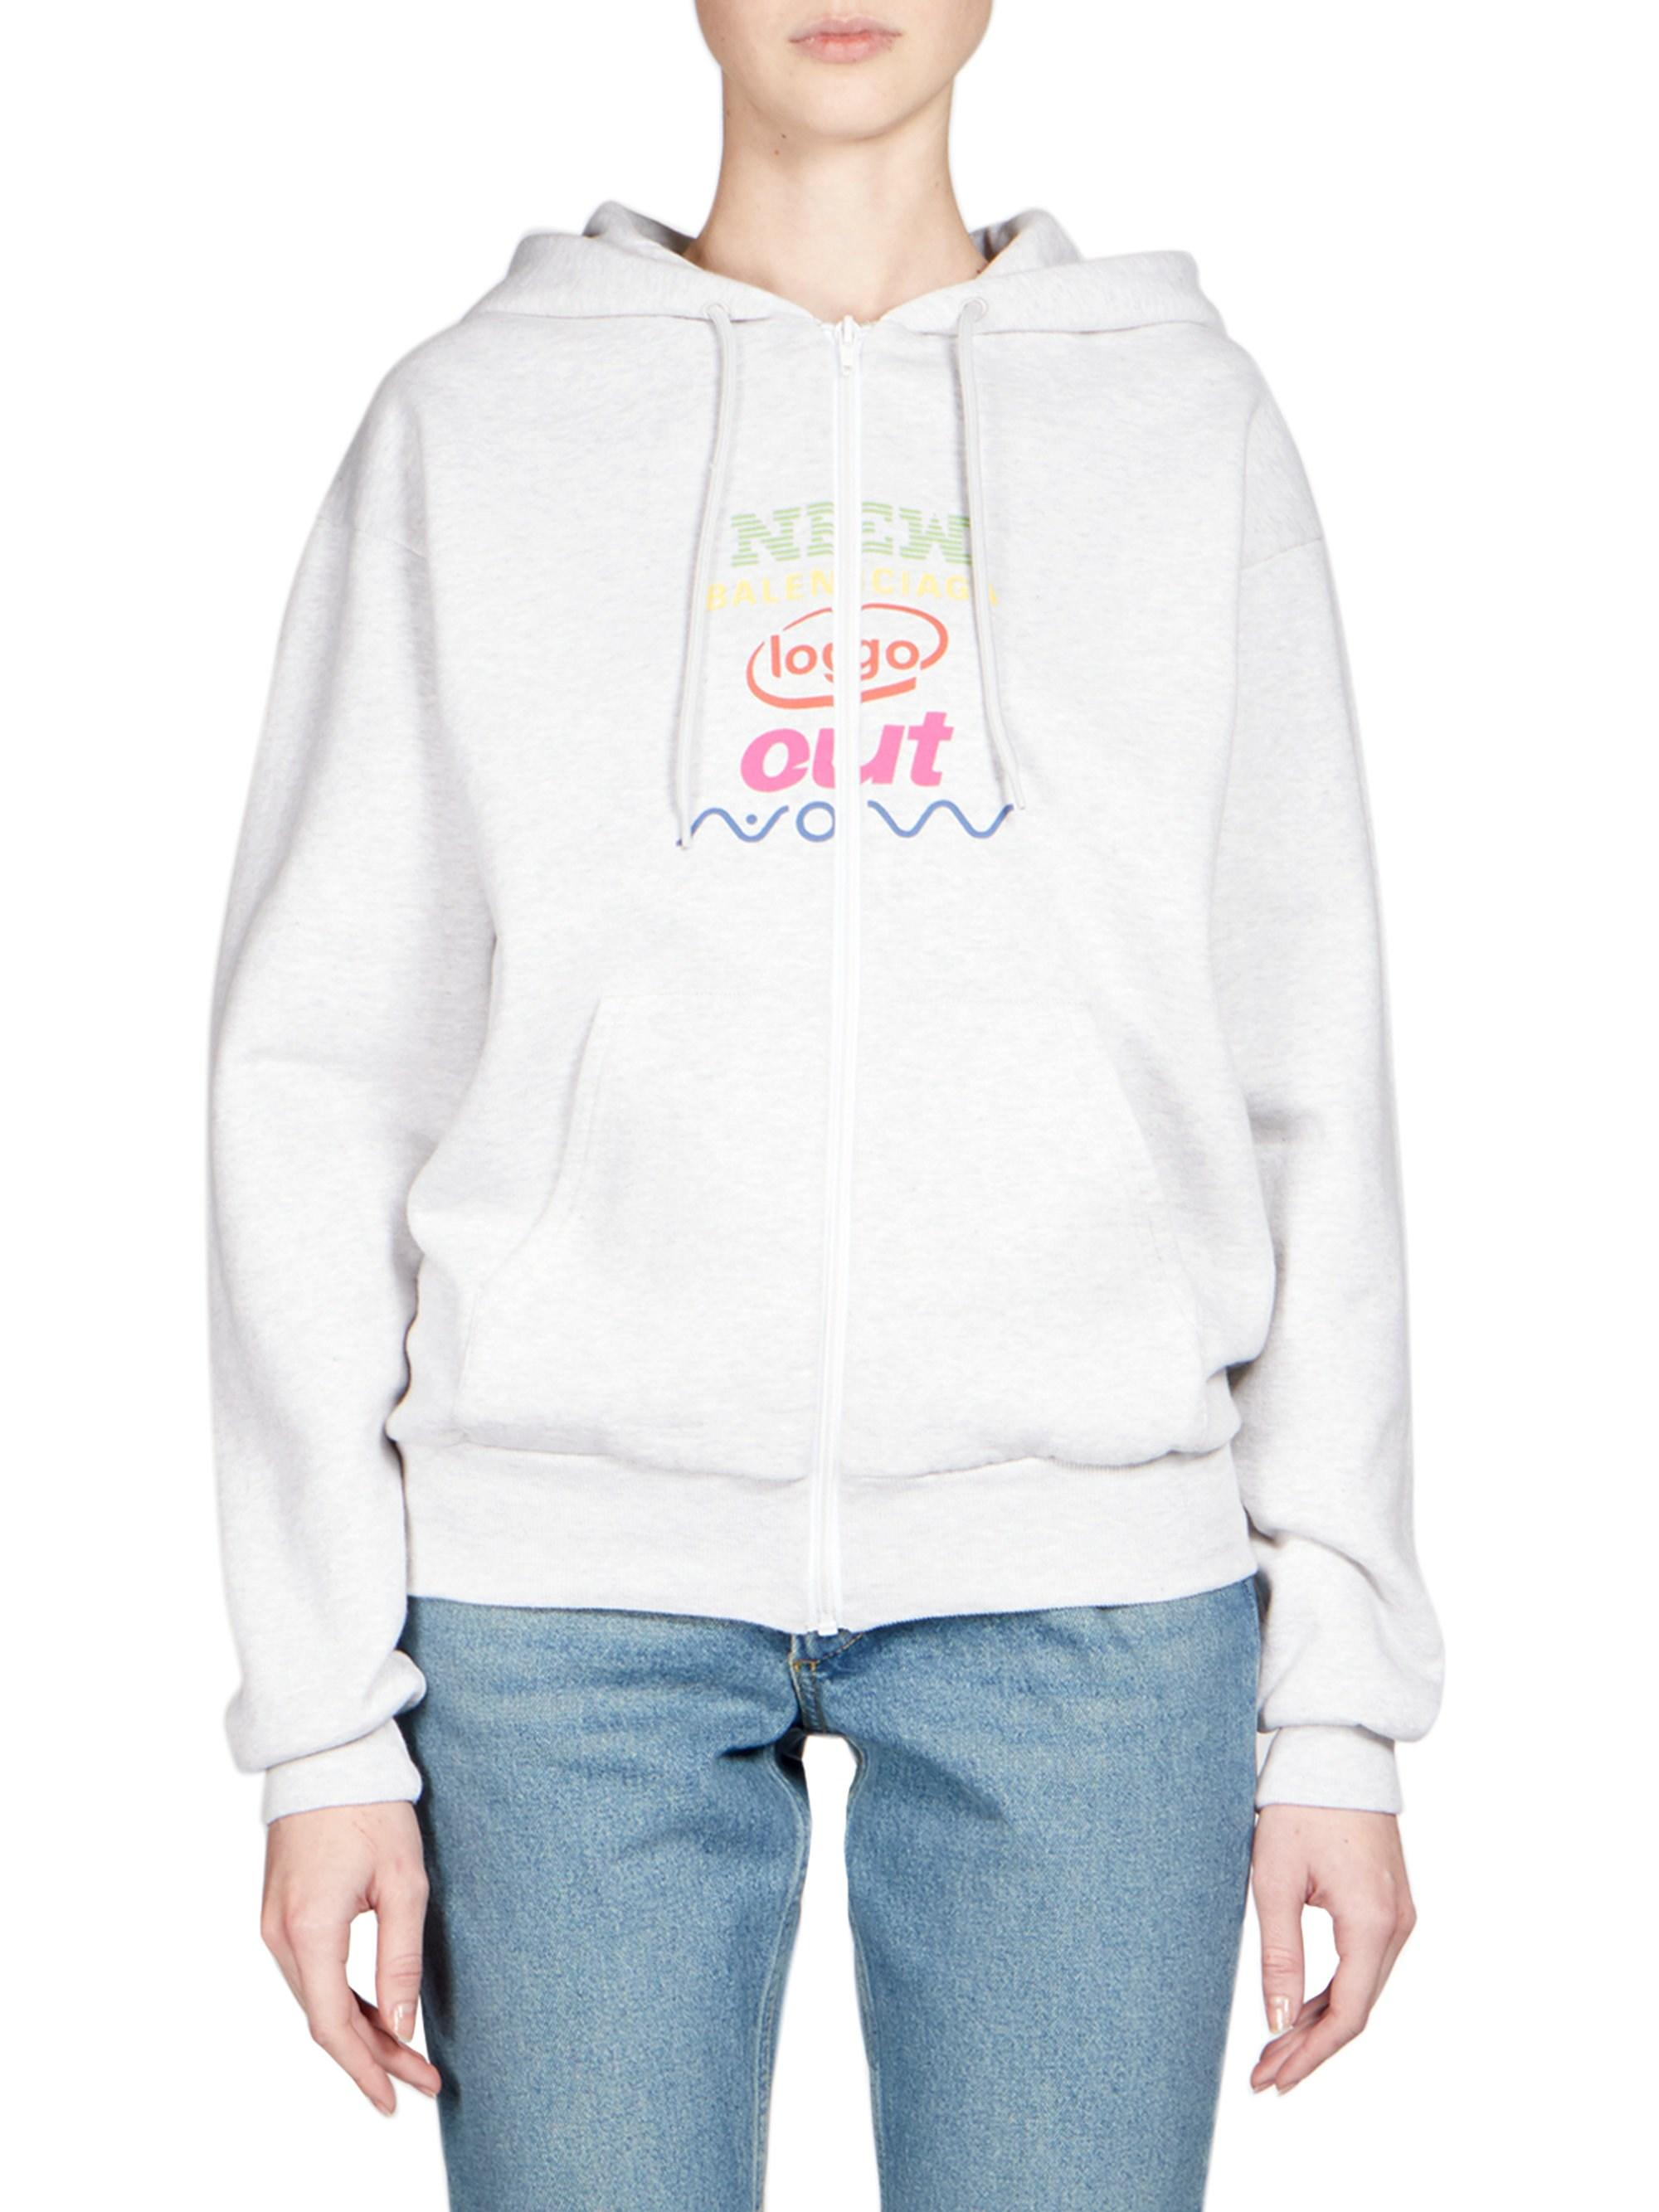 46c8c45d893 Balenciaga Women s New Out Now Logo Zip Hoodie - Grey - Size Small in Gray  - Lyst